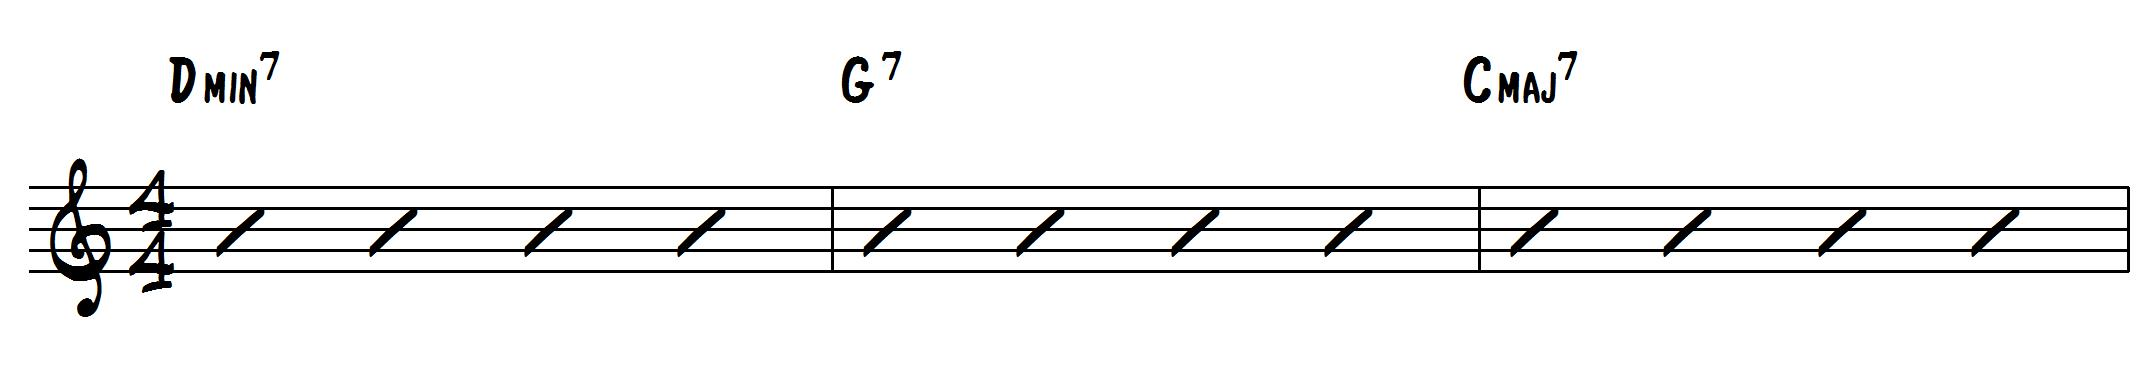 How to substitute a dominant 7 for a diminished 7 learn jazz a diminished 7 chord can replace an altered dominant 7 chord commonly b9 or 9 when the root of the diminished 7 is a half step above the root of the hexwebz Choice Image